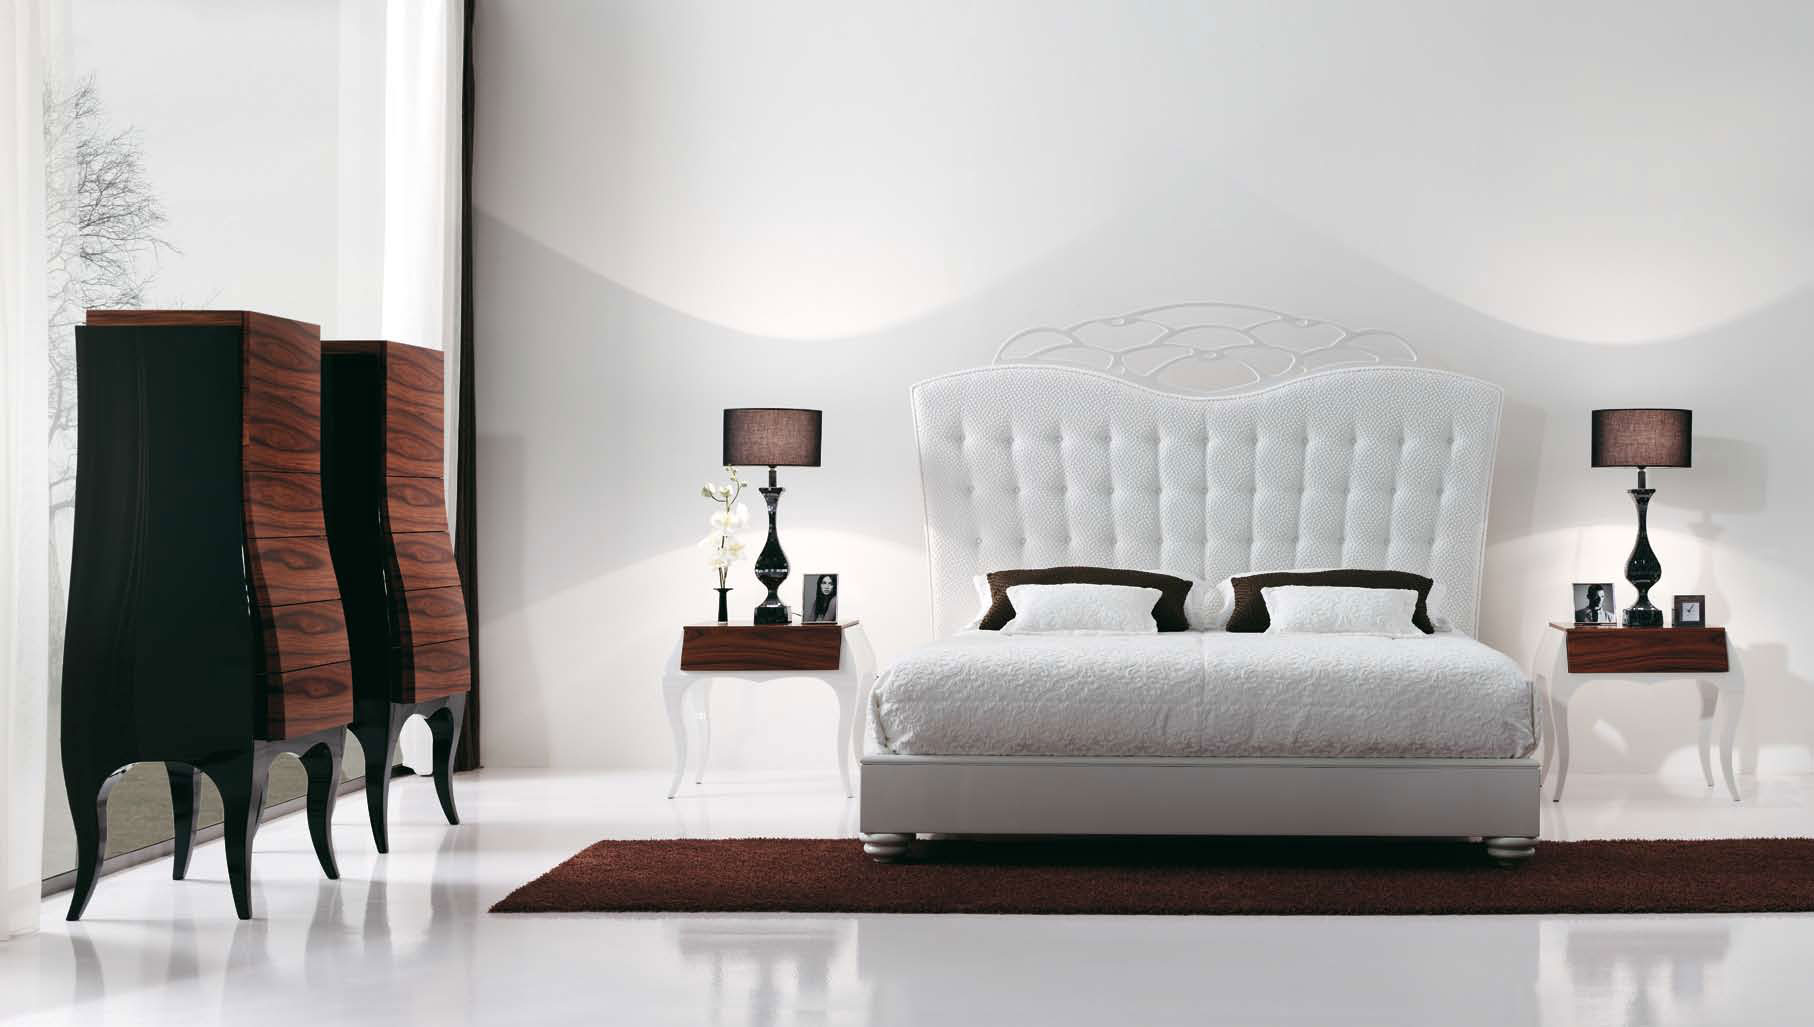 Perfect White Bedroom Furniture Design Ideas 1814 x 1027 · 118 kB · jpeg